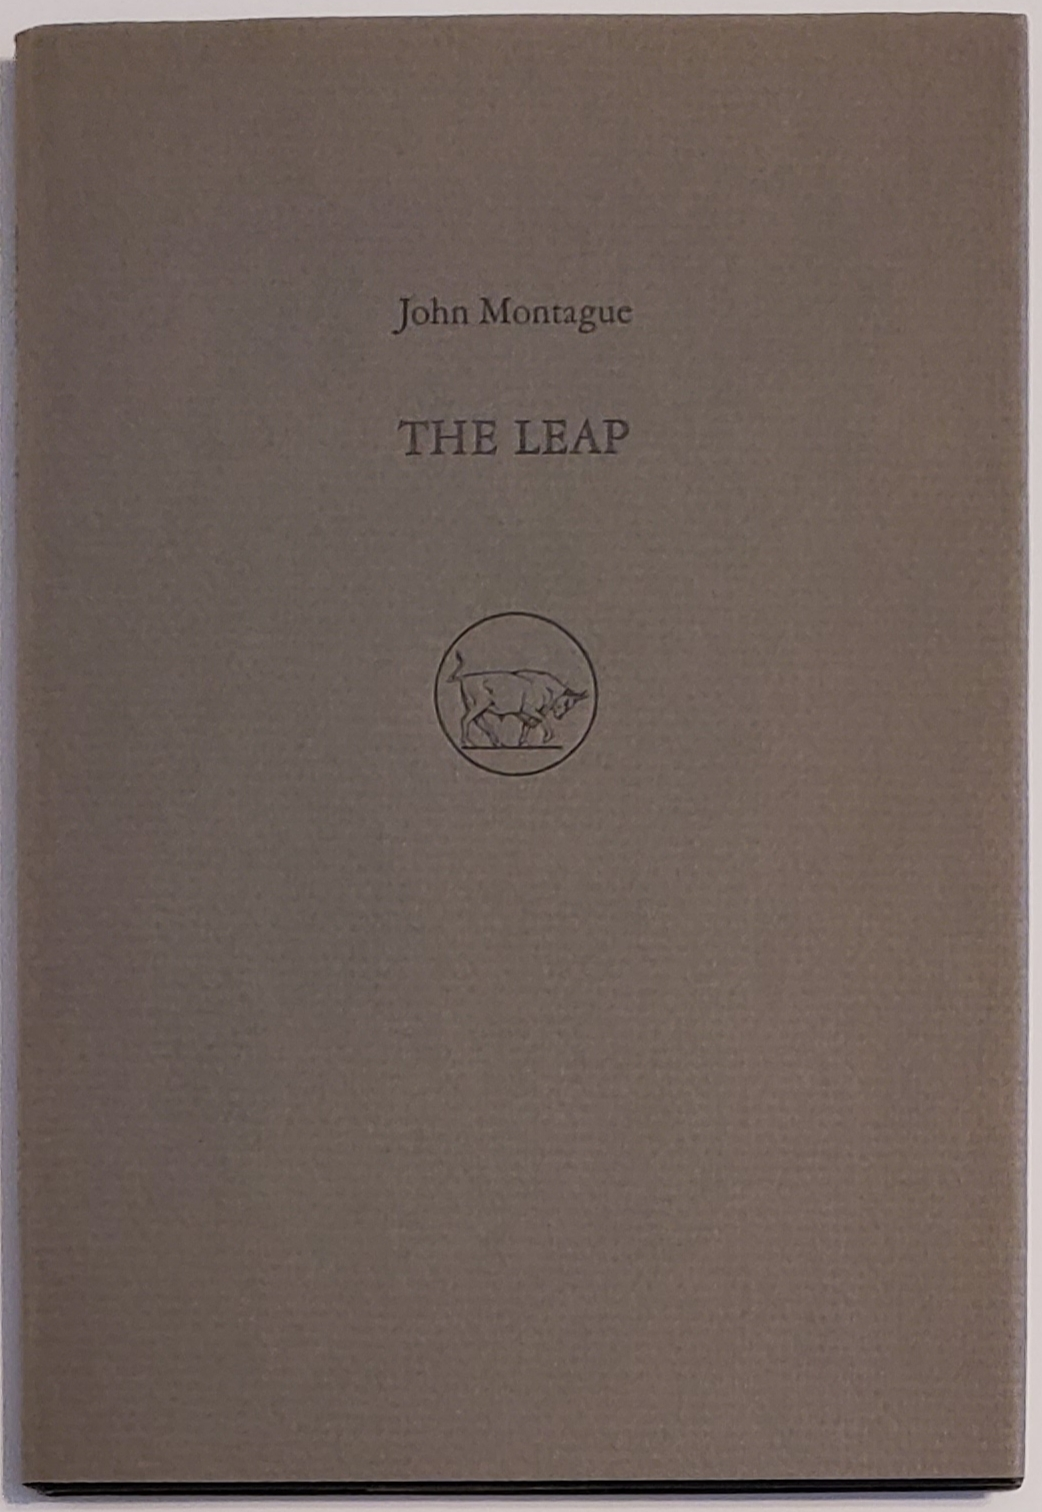 THE LEAP. Two Poems. Illustrations by Timothy Engellan. John Montague.